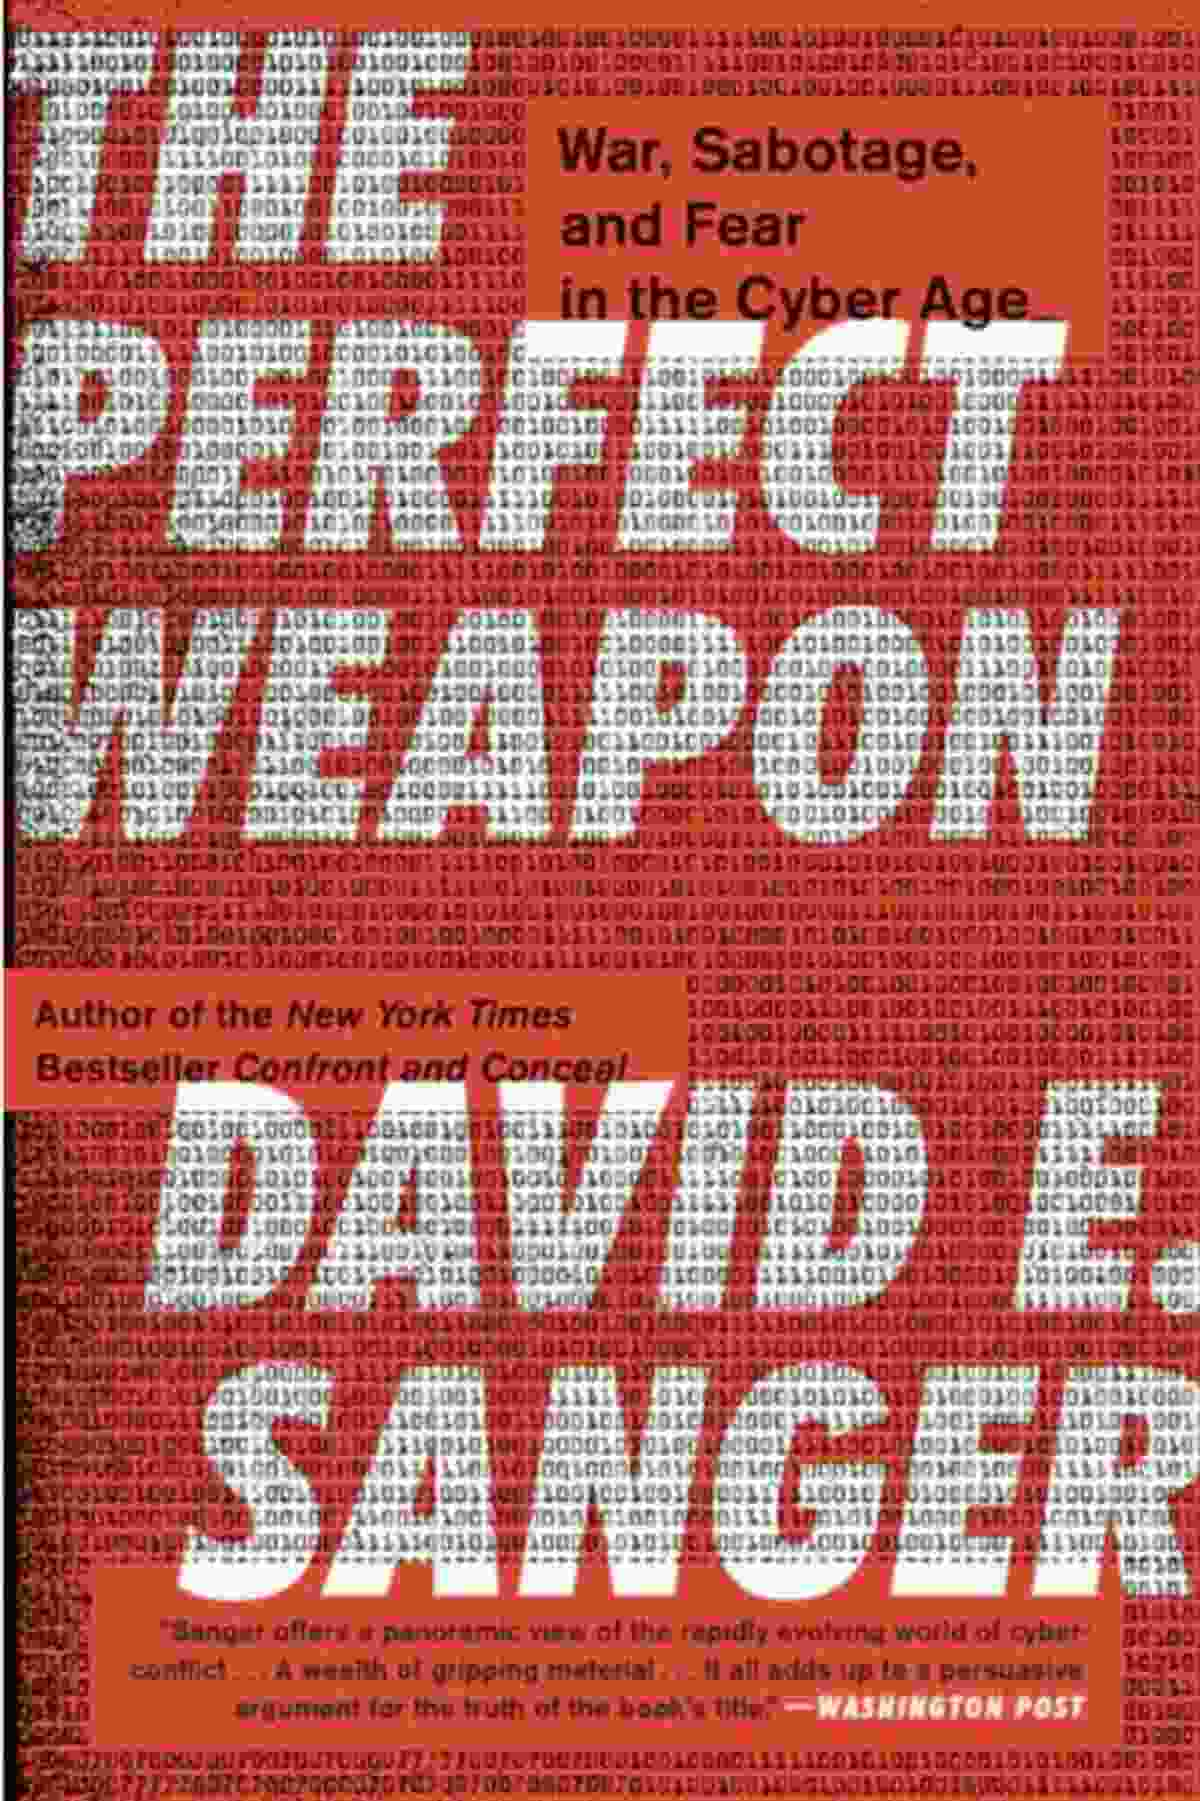 The Perfect Weapon: War, Sabotage, and Fear in the Cyber Age by David E. Sanger ($14.99) | Amazon's Best Selling Tech Kindle eBooks